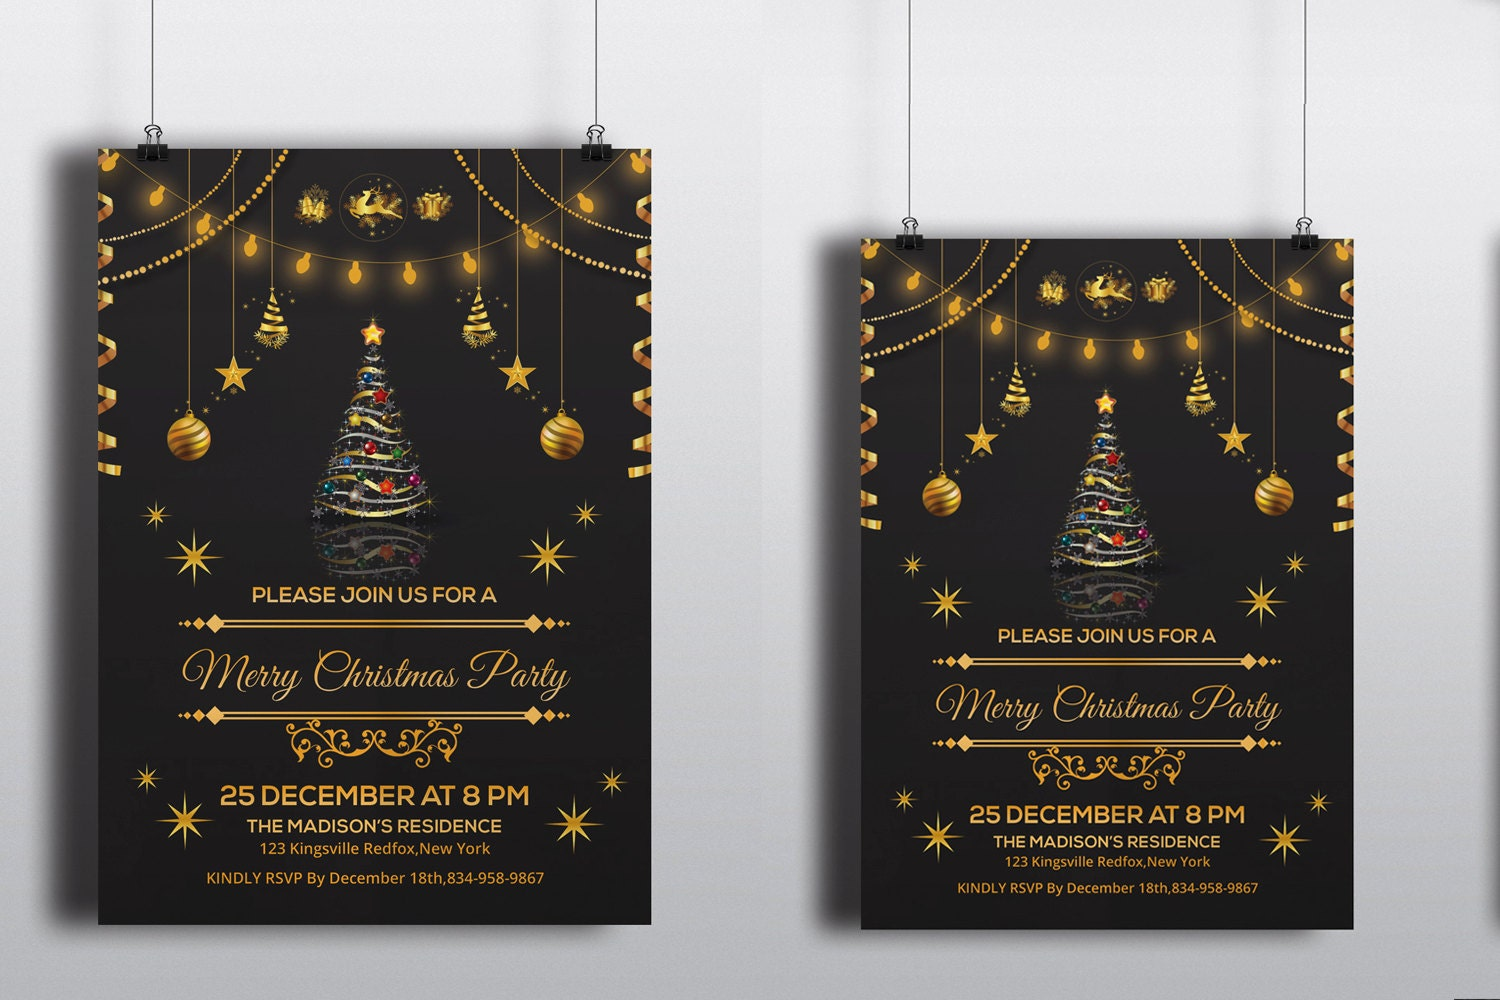 company holiday party invitation template - Etame.mibawa.co